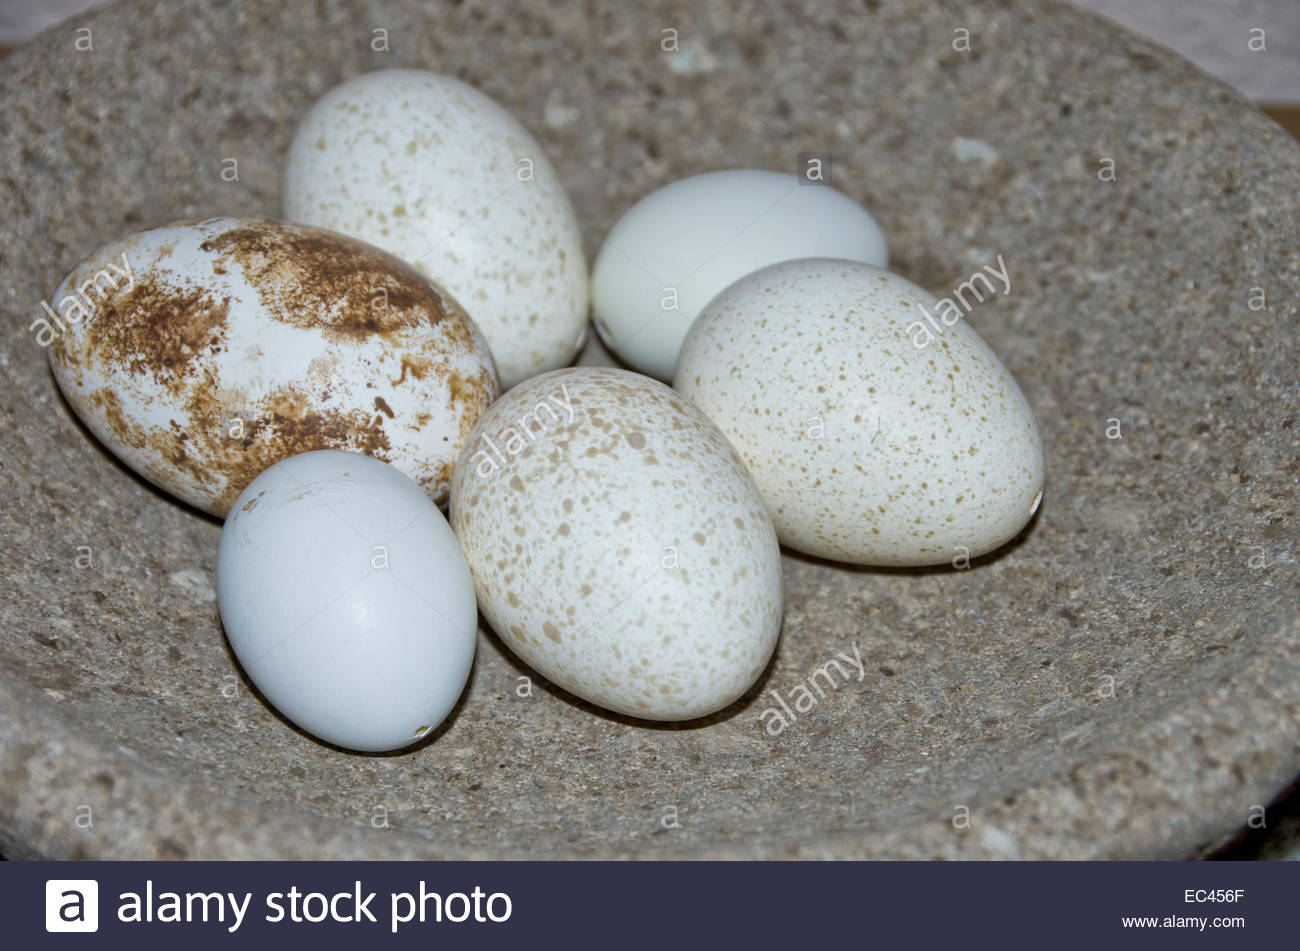 Freckled white Easter eggs or bird eggs in a bowl of stone - Stock Image